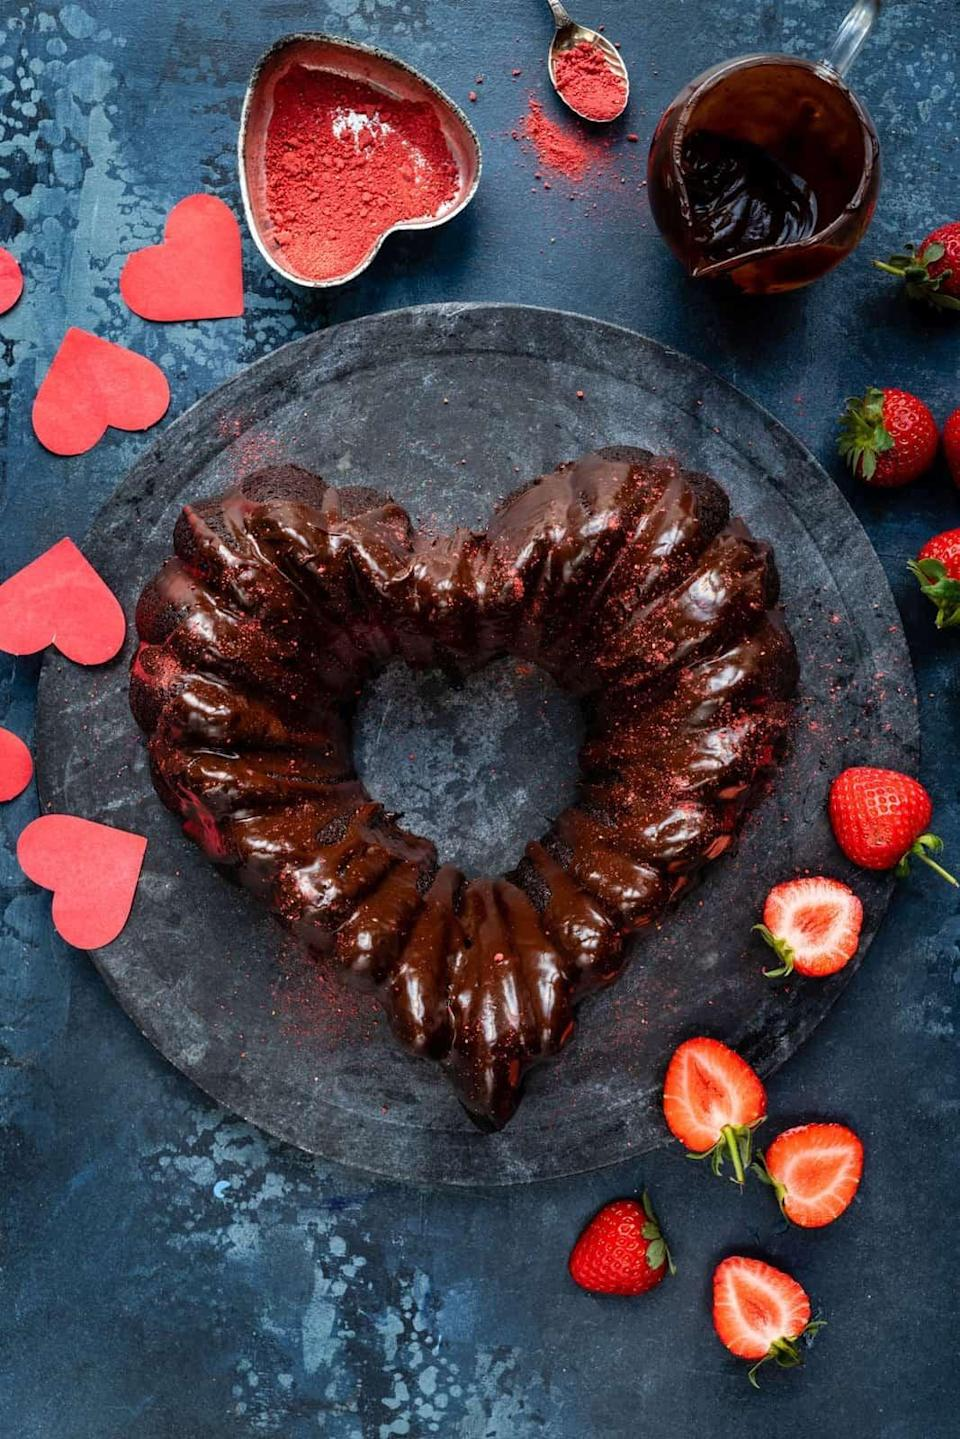 "<p>Made with love, this sweet cake will blow away your SO. It's easy to make and pairs well with strawberries, so get bakin'!</p> <p><strong>Get the recipe</strong>: <a href=""https://www.supergoldenbakes.com/chocolate-bundt-cake/"" class=""link rapid-noclick-resp"" rel=""nofollow noopener"" target=""_blank"" data-ylk=""slk:vegan chocolate heart-shaped bundt cake"">vegan chocolate heart-shaped bundt cake</a></p>"